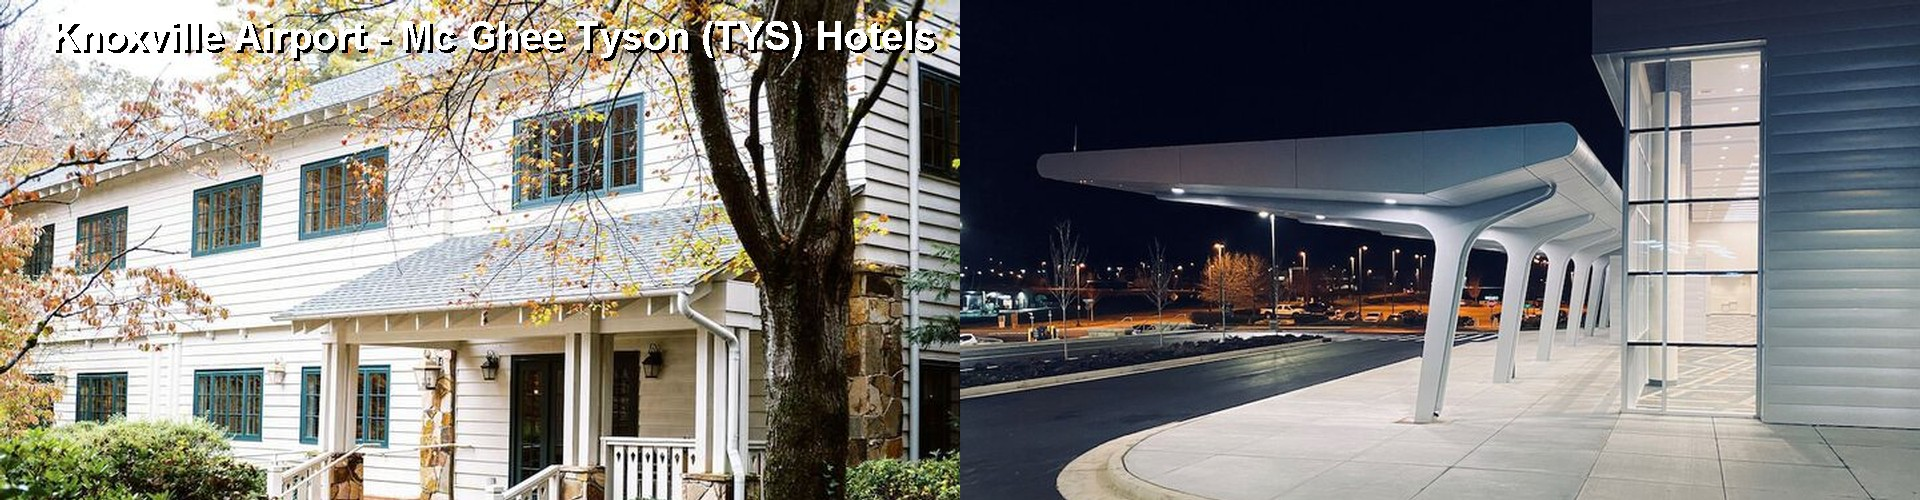 5 Best Hotels Near Knoxville Airport Mc Ghee Tyson Tys